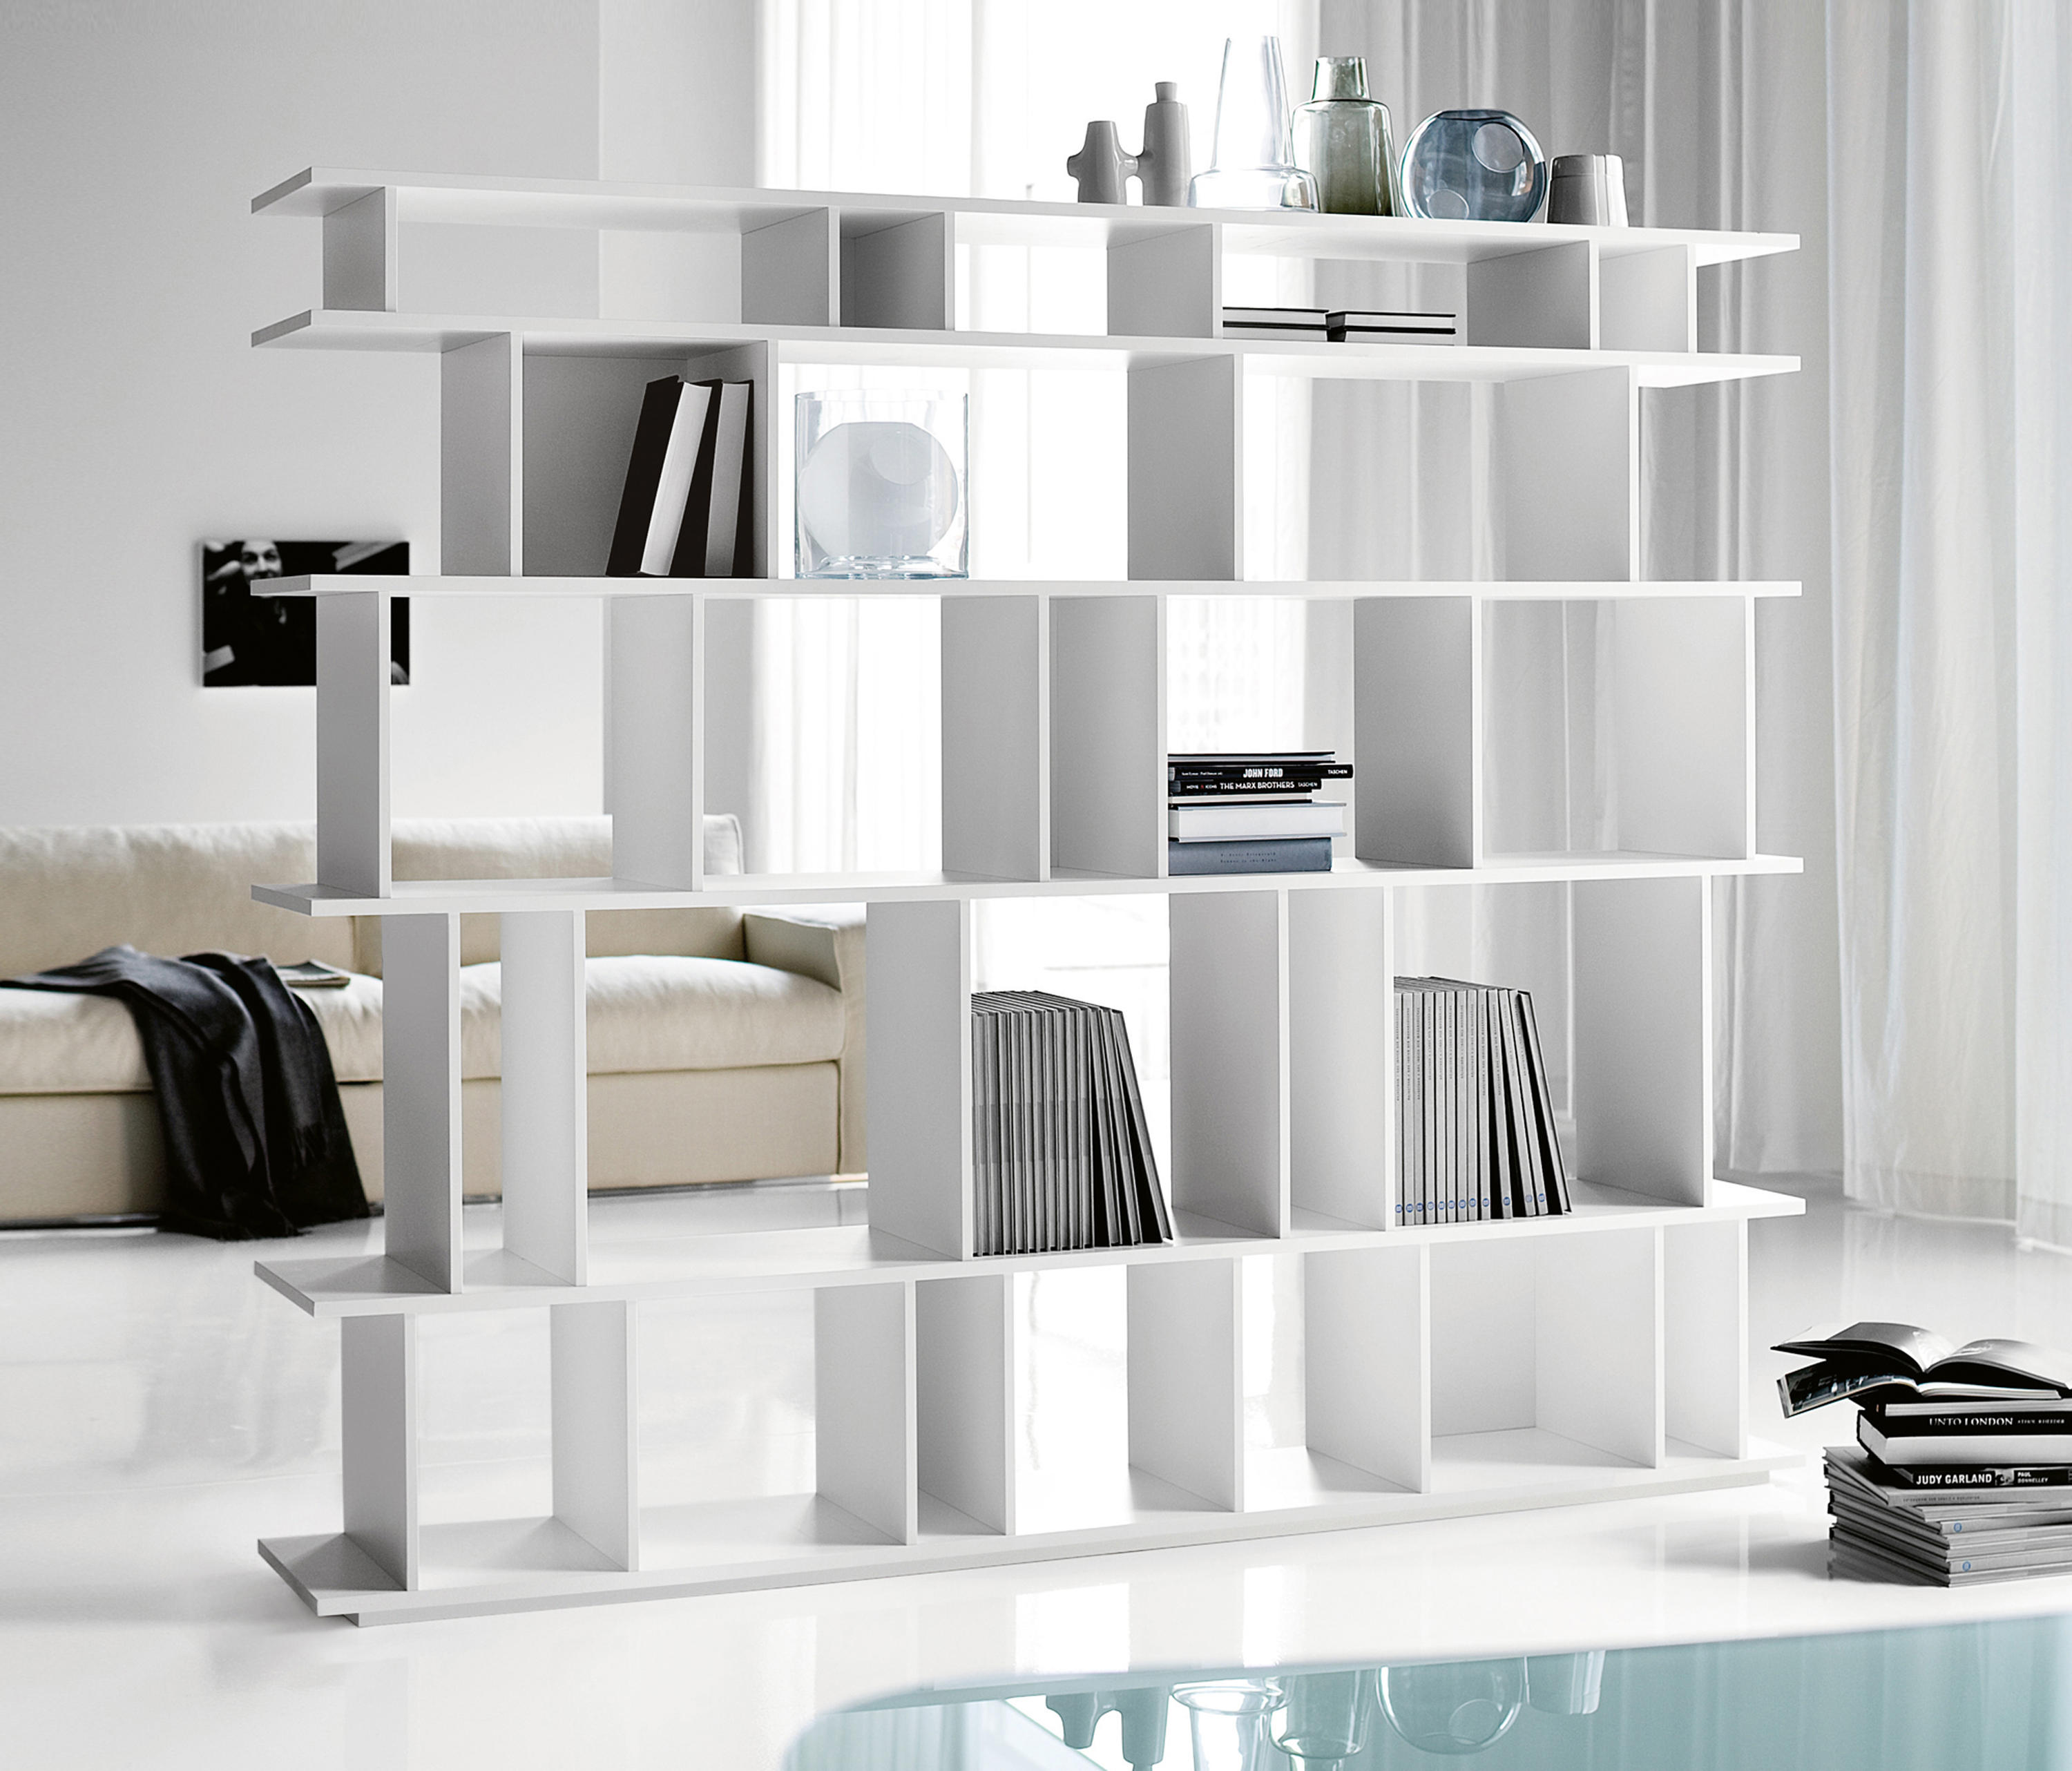 loft shelving from cattelan italia architonic. Black Bedroom Furniture Sets. Home Design Ideas